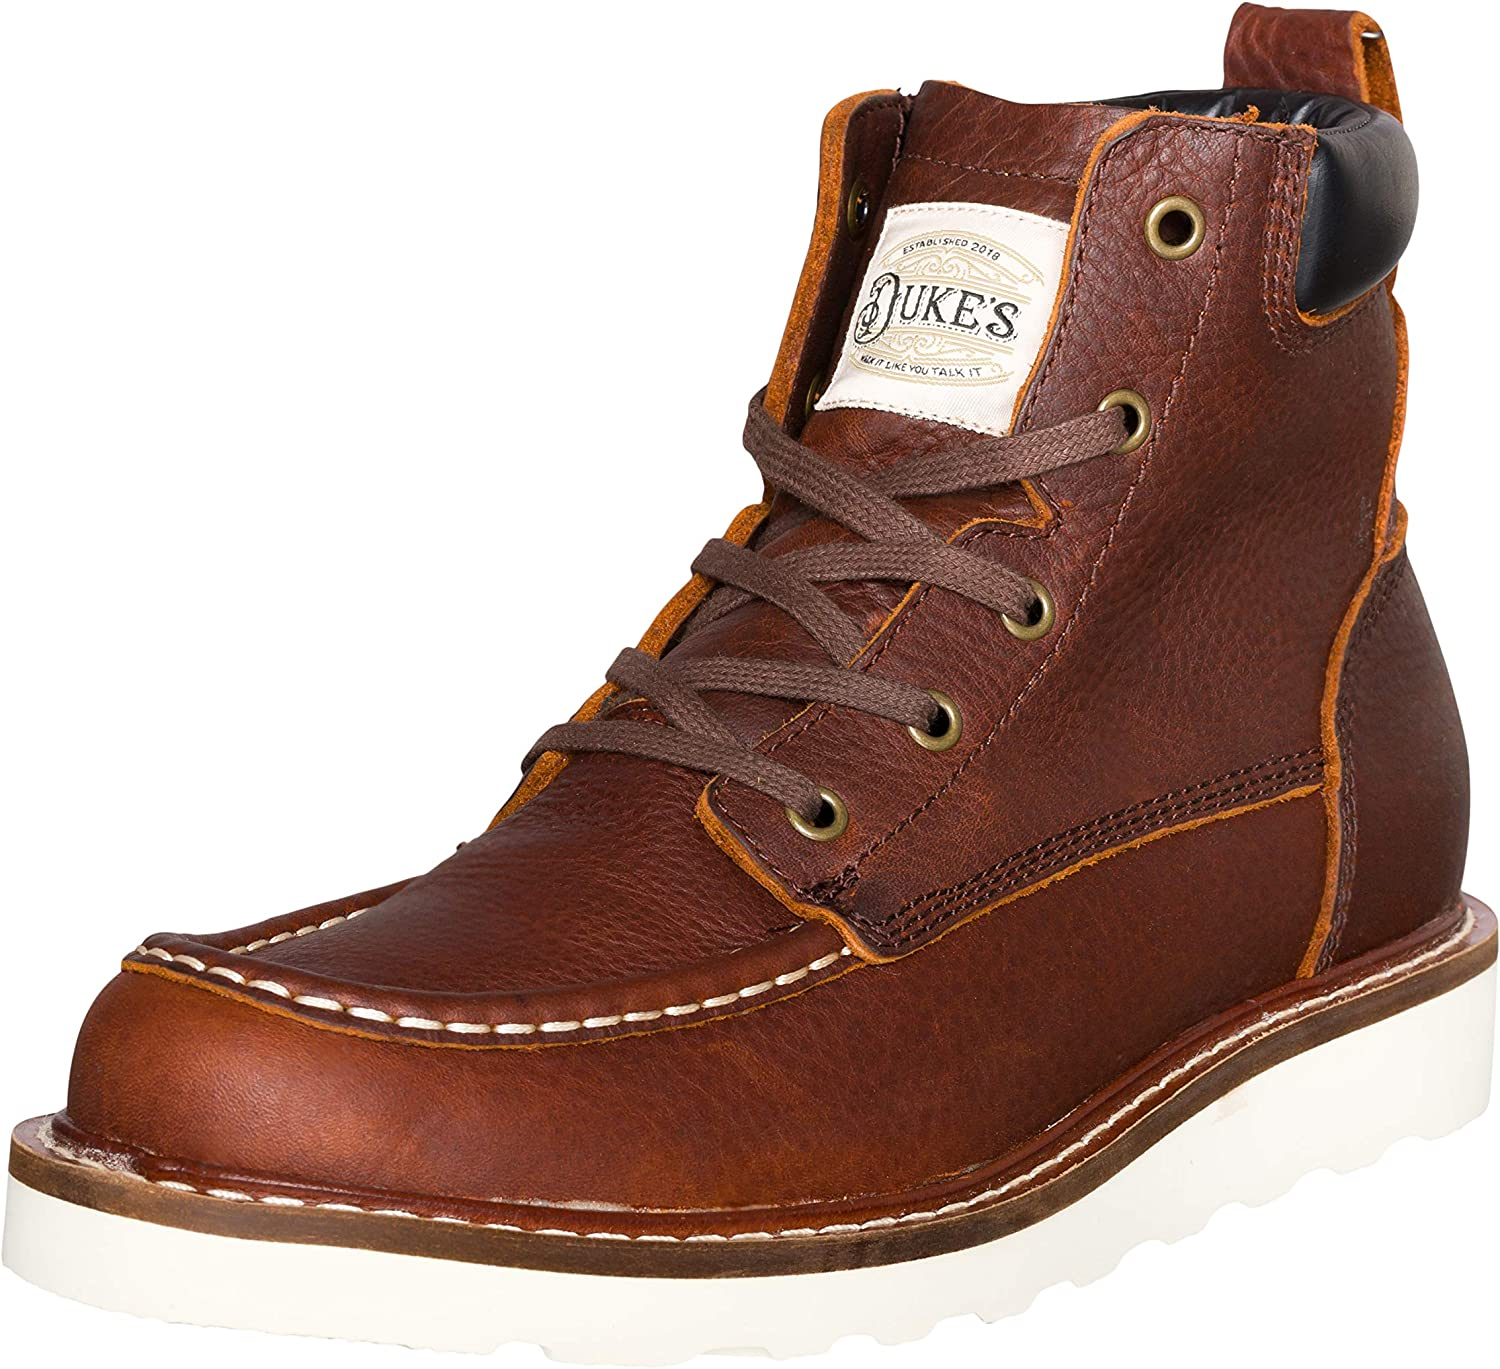 Duke's Mens Boots - Portland Leather Boot with Premium Cushion Insole